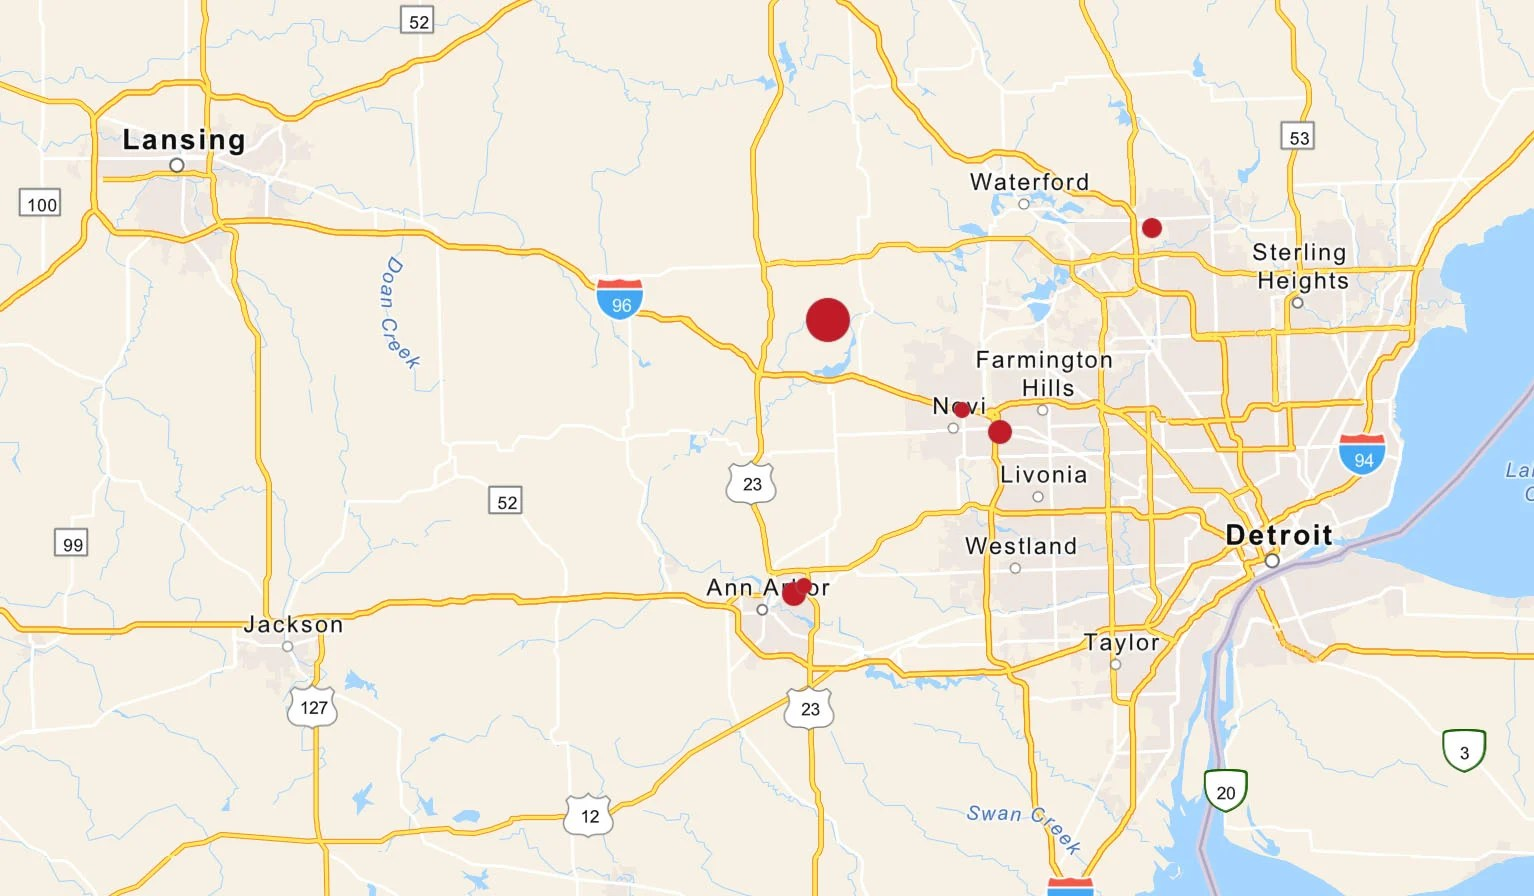 New york city and san francisco might come to mind, but big businesses and high rents don't necessarily translate to wealth for a. Metro Detroit Cities Included In Online Map To Track Autonomous Vehicle Tests Crain S Detroit Business